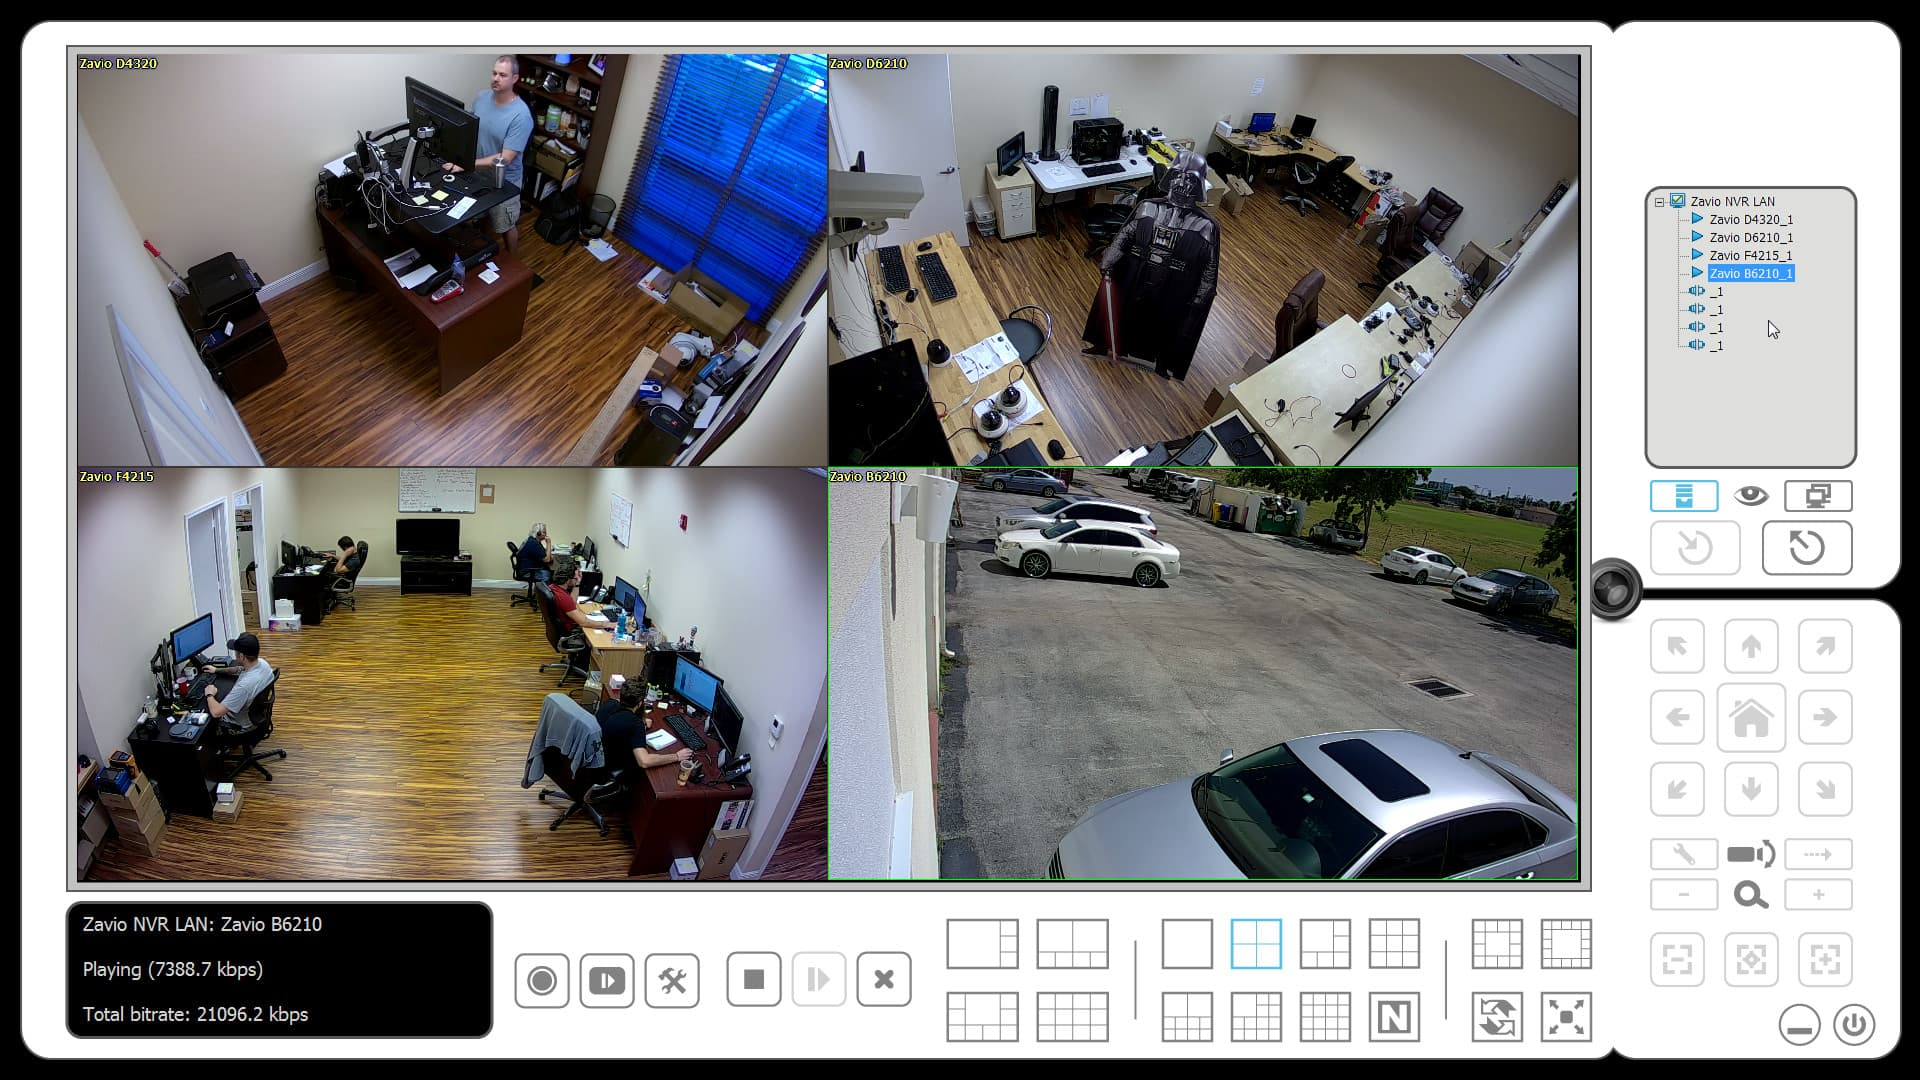 IP Surveillance System, 2 IP Cameras, NVR, PoE Switch